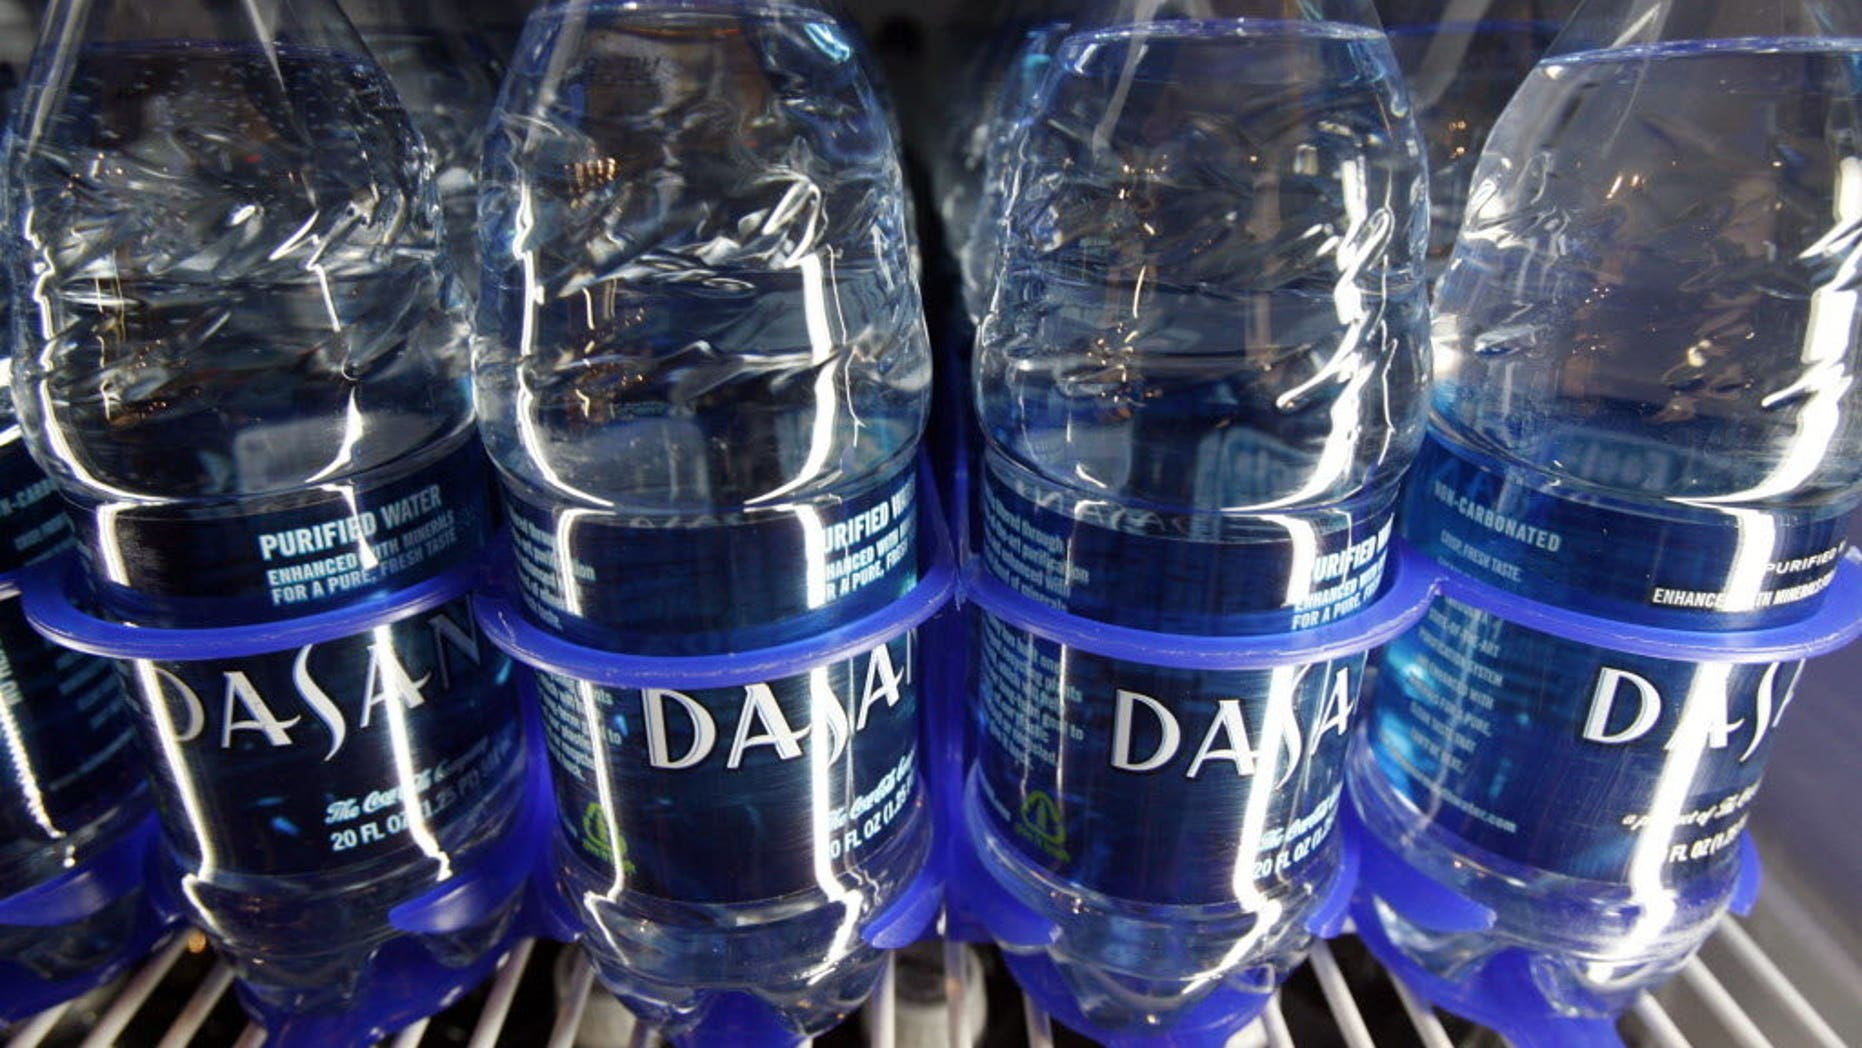 Dasani, owned by the Coca-Cola company, is one of the country's top selling bottled waters.